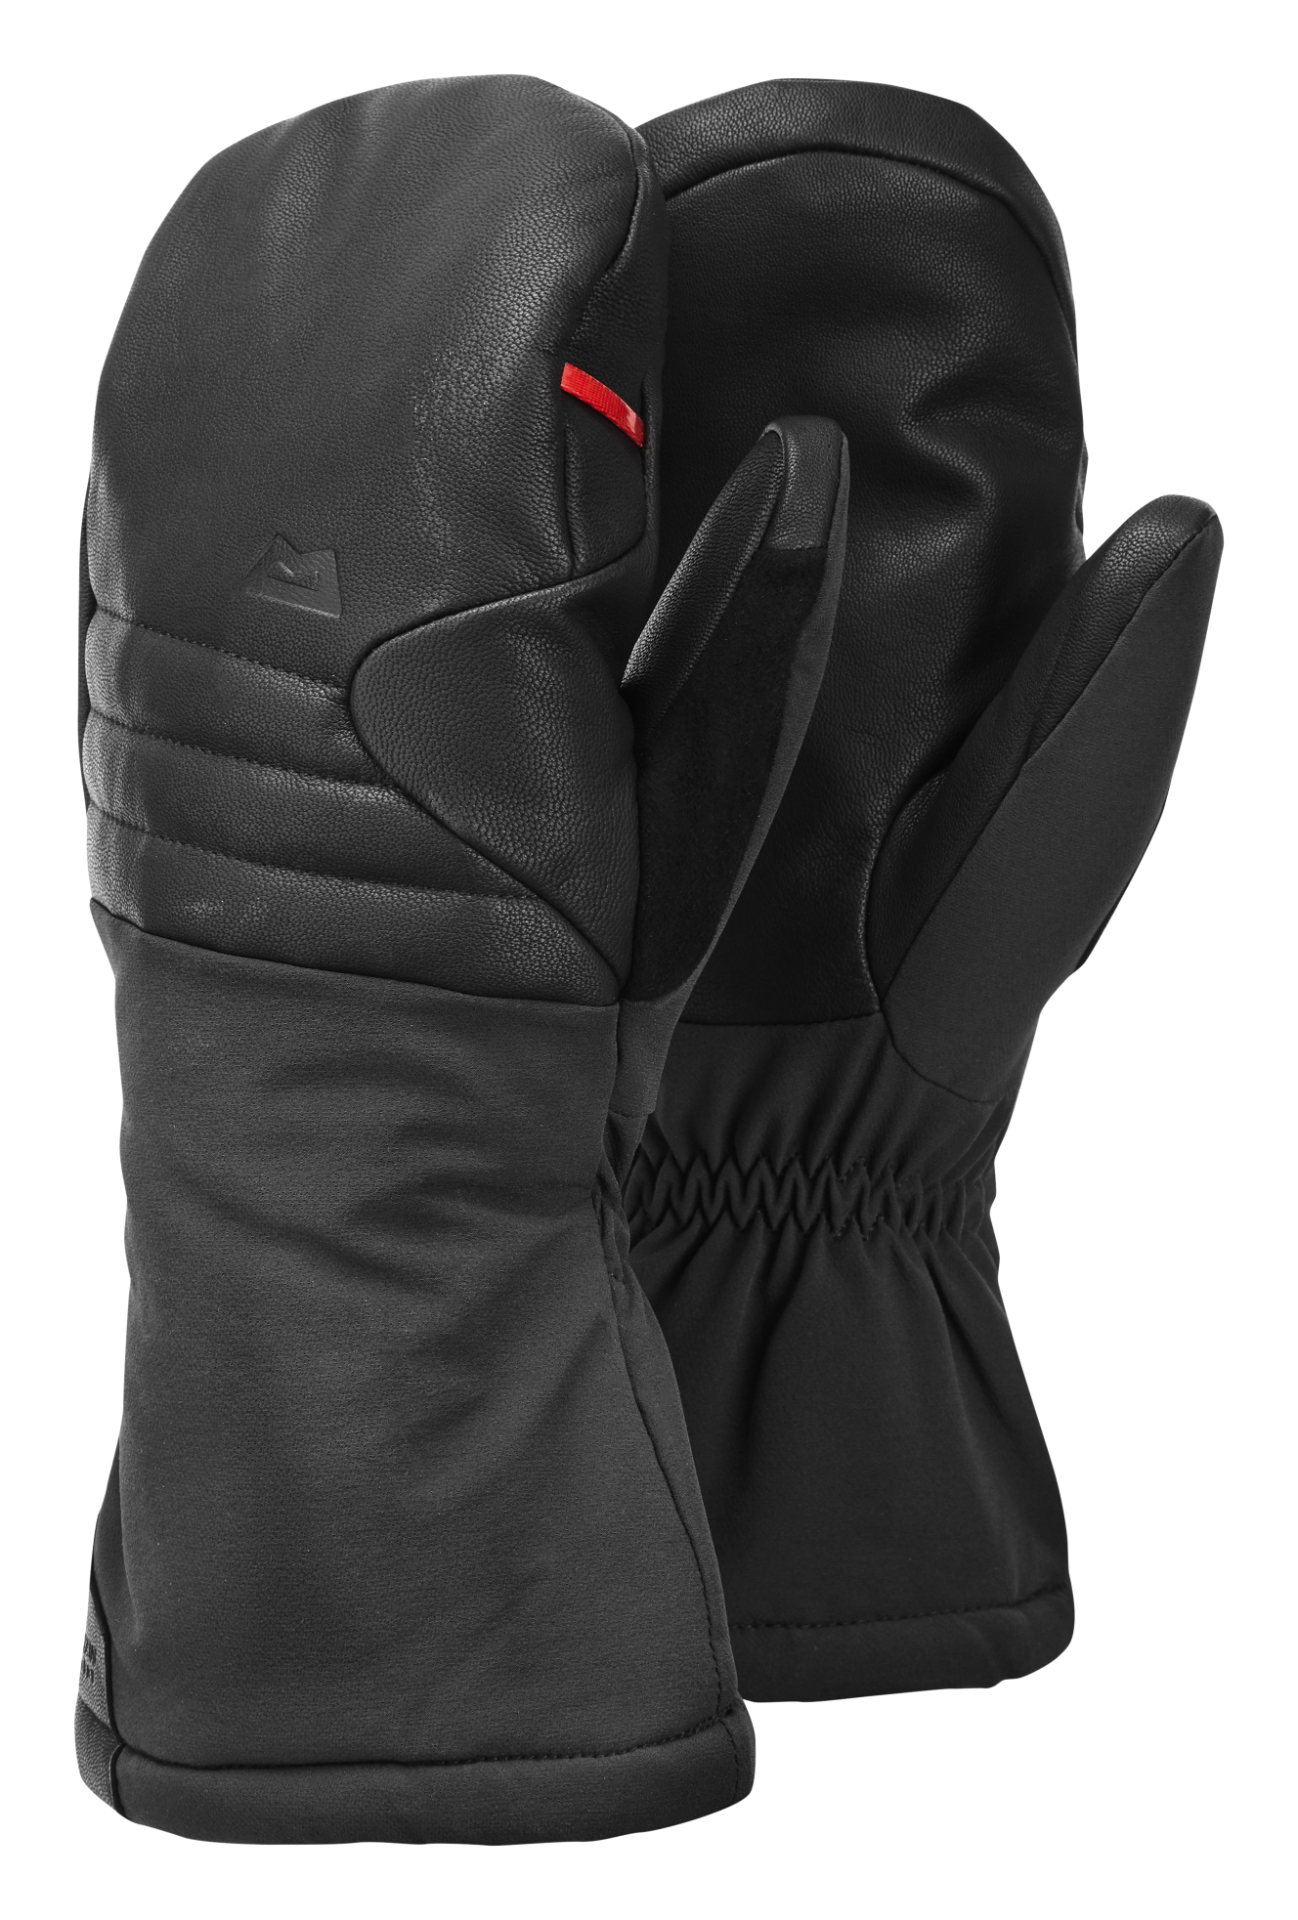 Rukavice Mountain Equipment Pinnacle Mitt  Black L